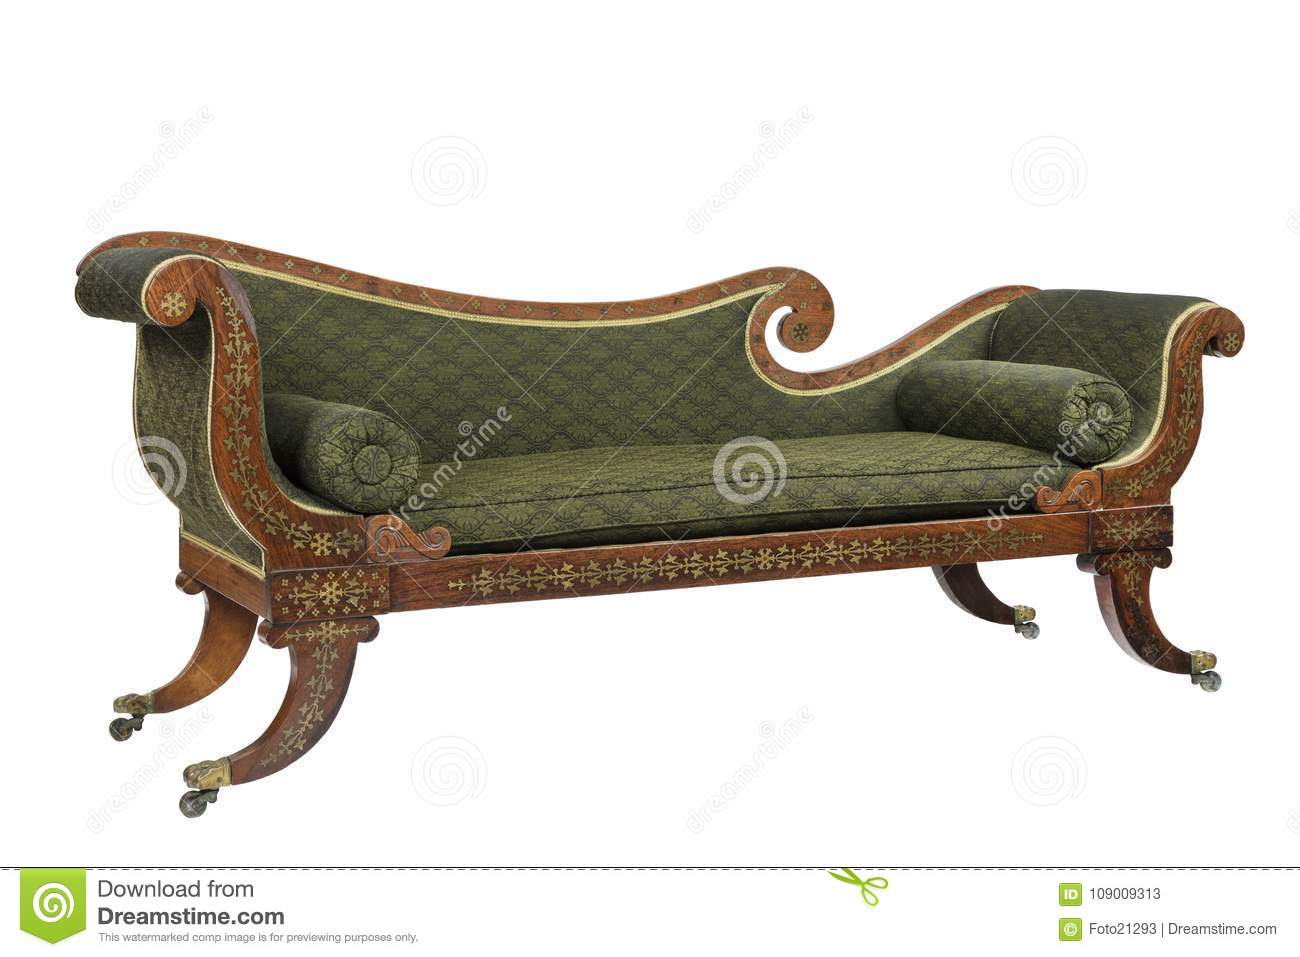 Outstanding Mahogany Scroll Arm Sofa Chaise Longue Stock Image Image Onthecornerstone Fun Painted Chair Ideas Images Onthecornerstoneorg